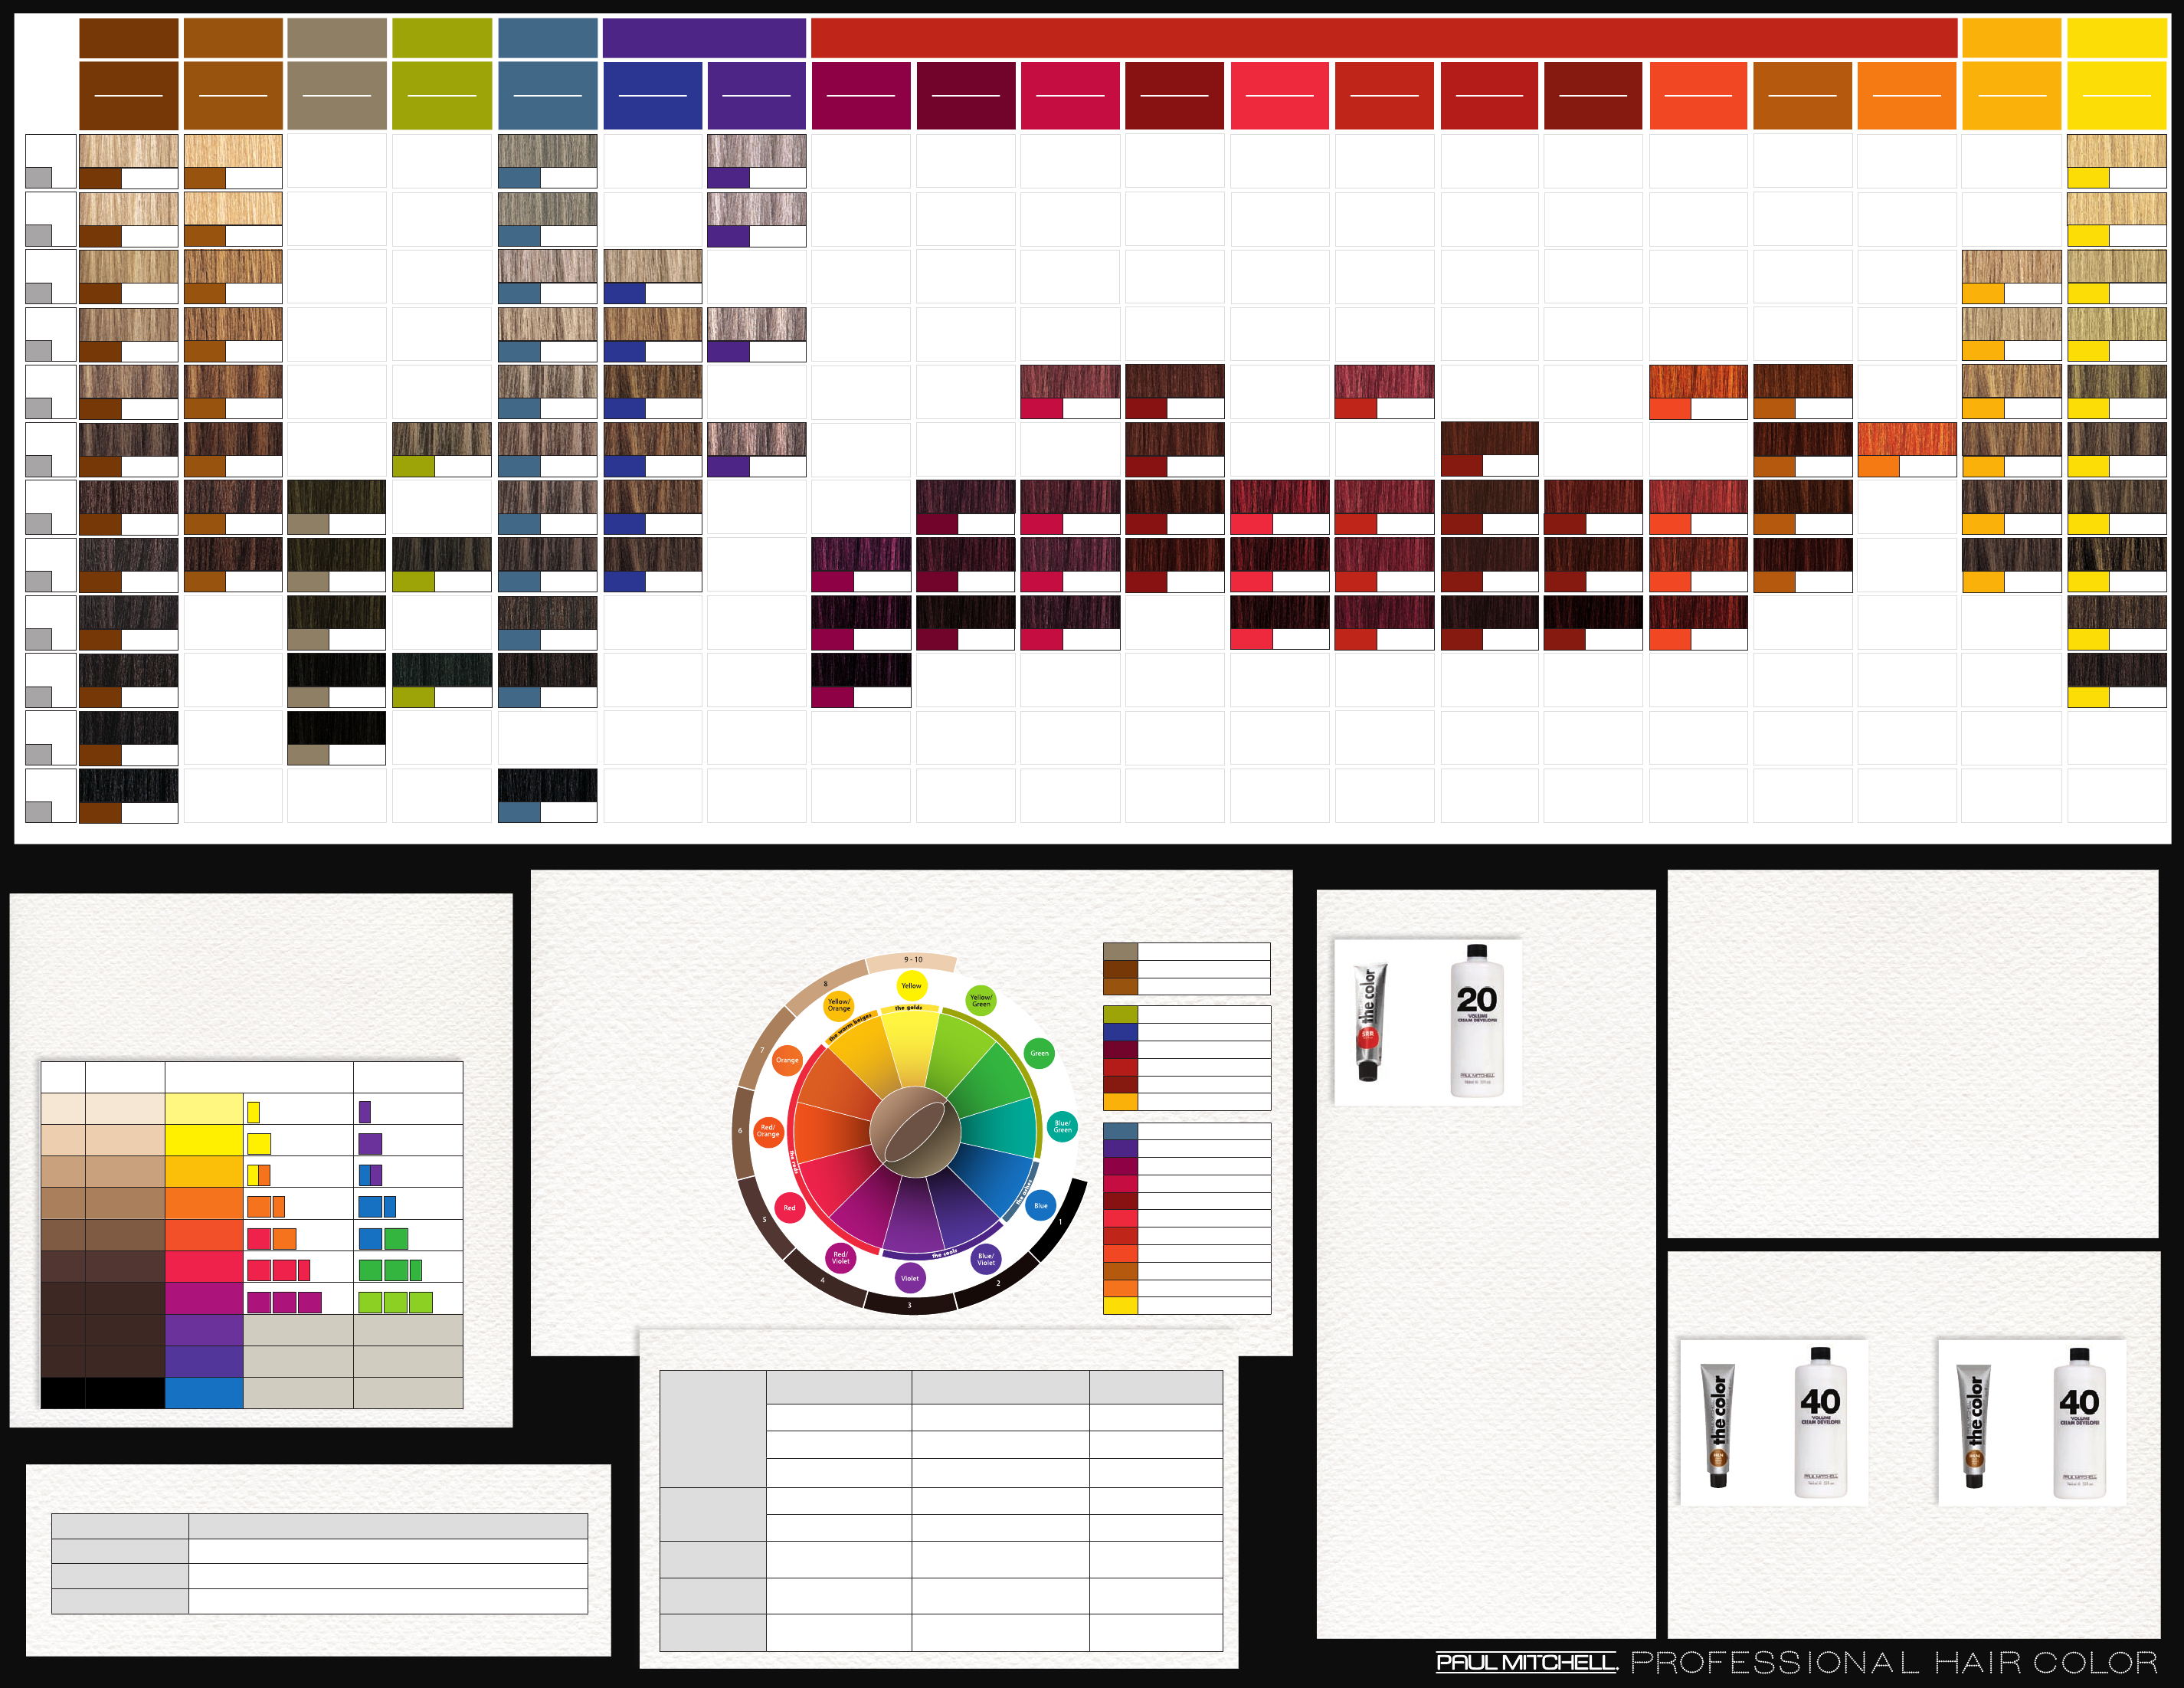 Pm shines colors chart images free any chart examples pm shines chart this is one of the color gloss charts google pm shines chart this geenschuldenfo Images